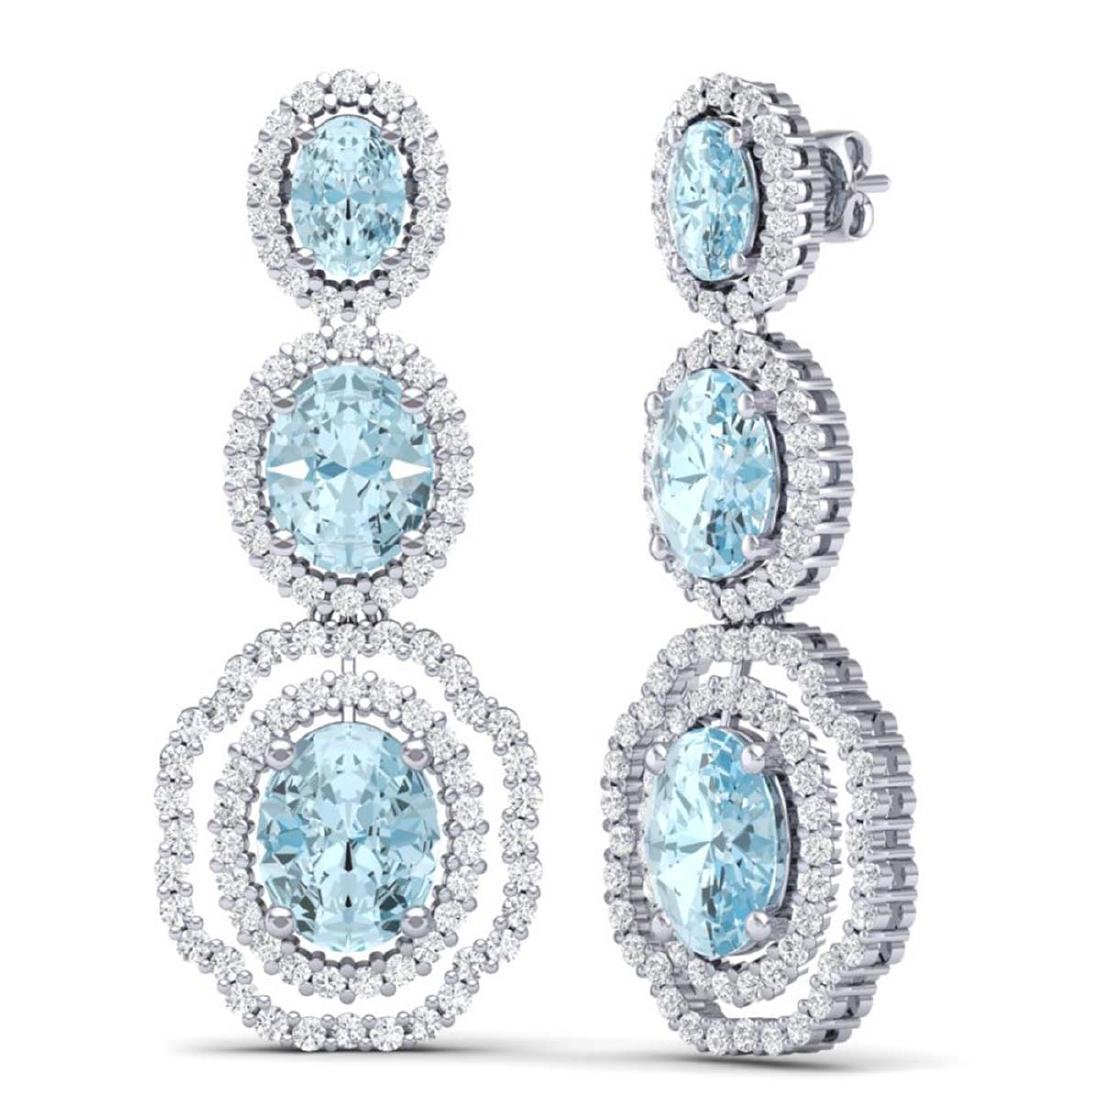 17.46 CTW Royalty Sky Topaz & VS Diamond Earrings 18K - 3